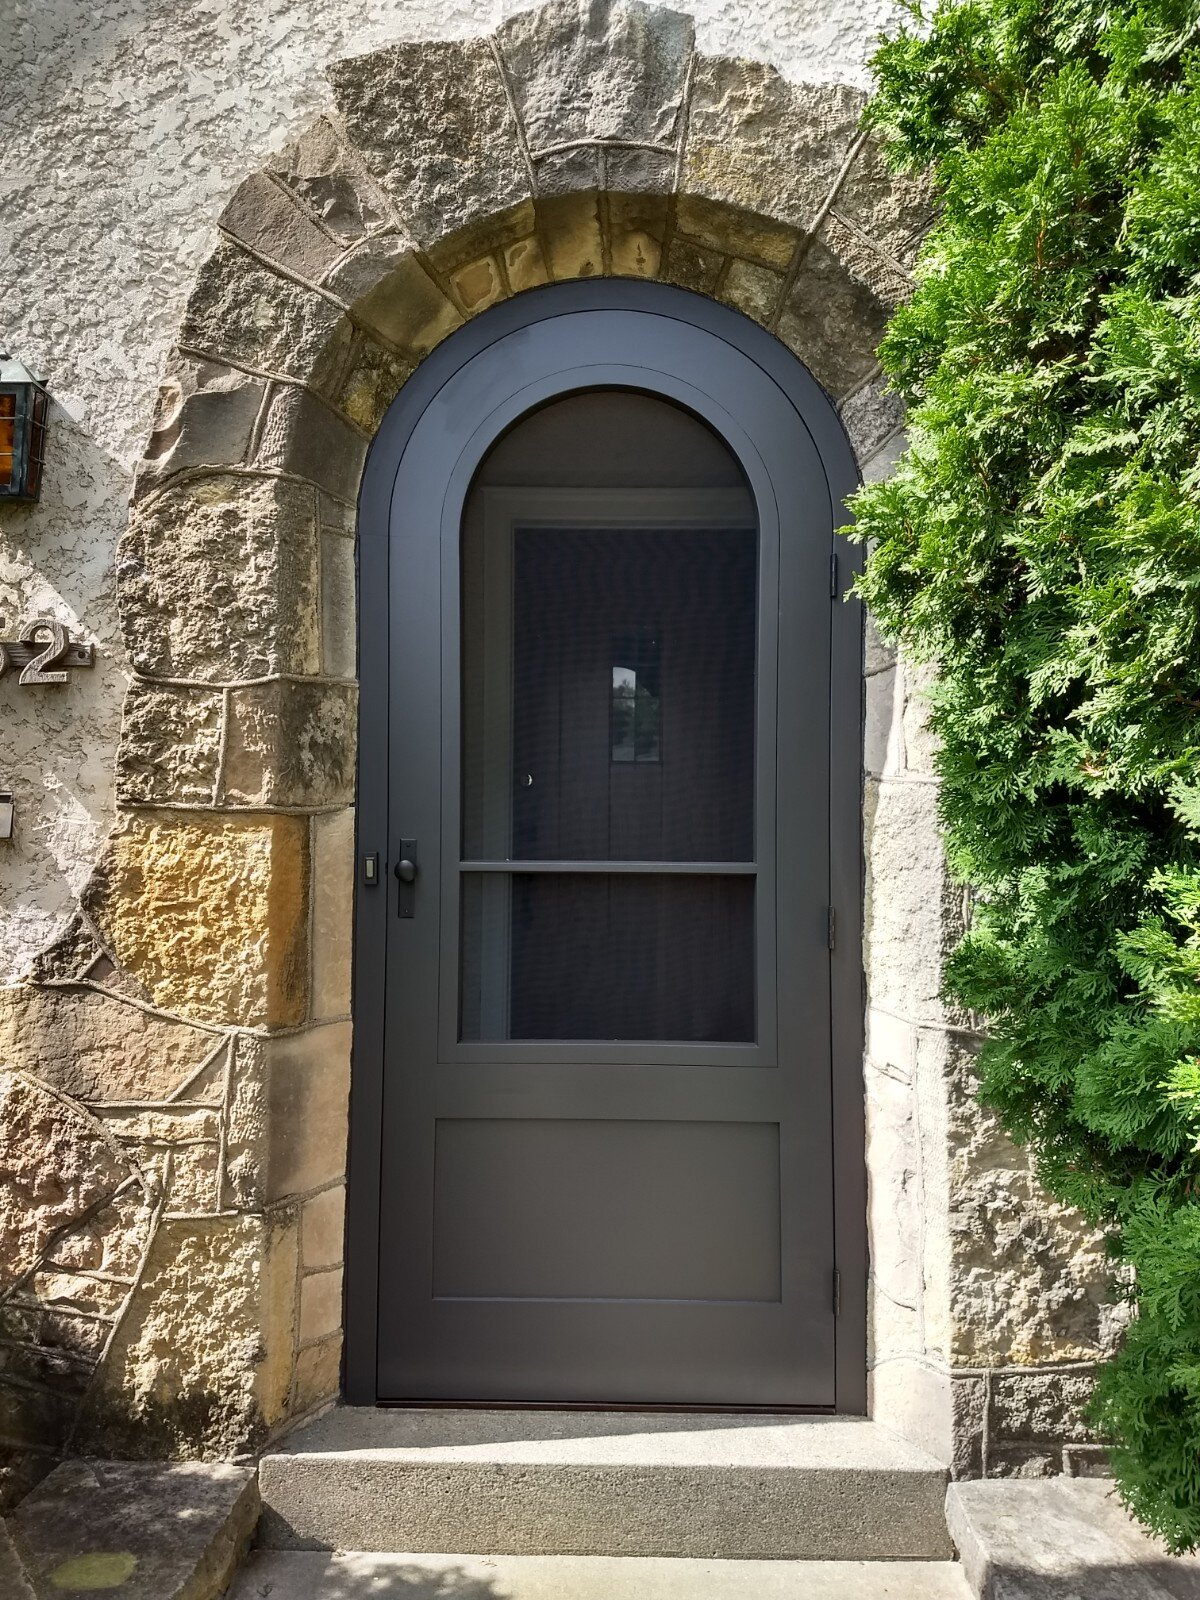 After - New door and frame